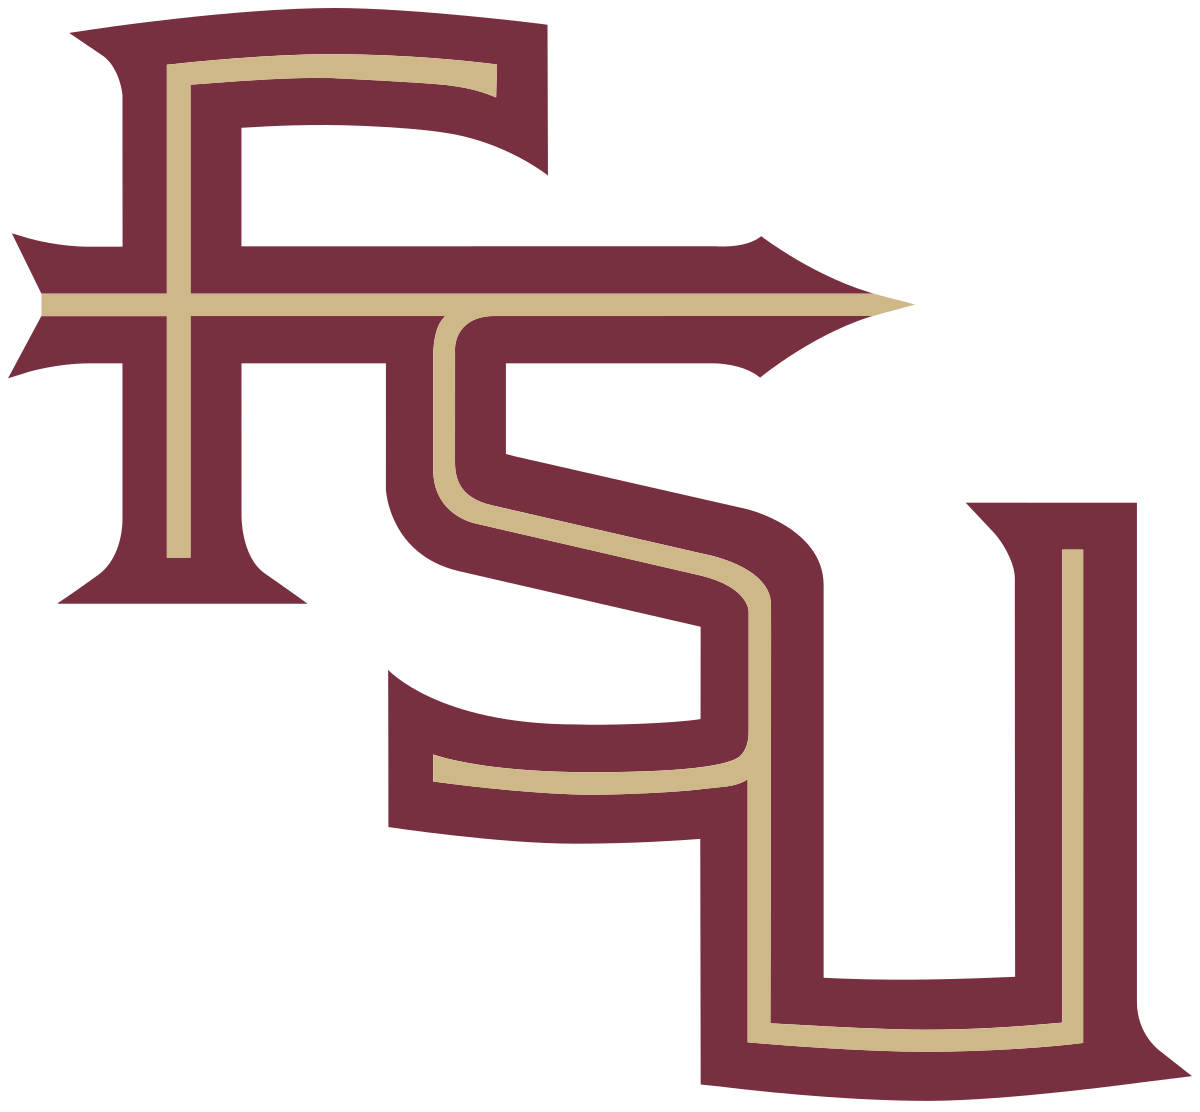 Florida state flag png. Seminoles women s golf